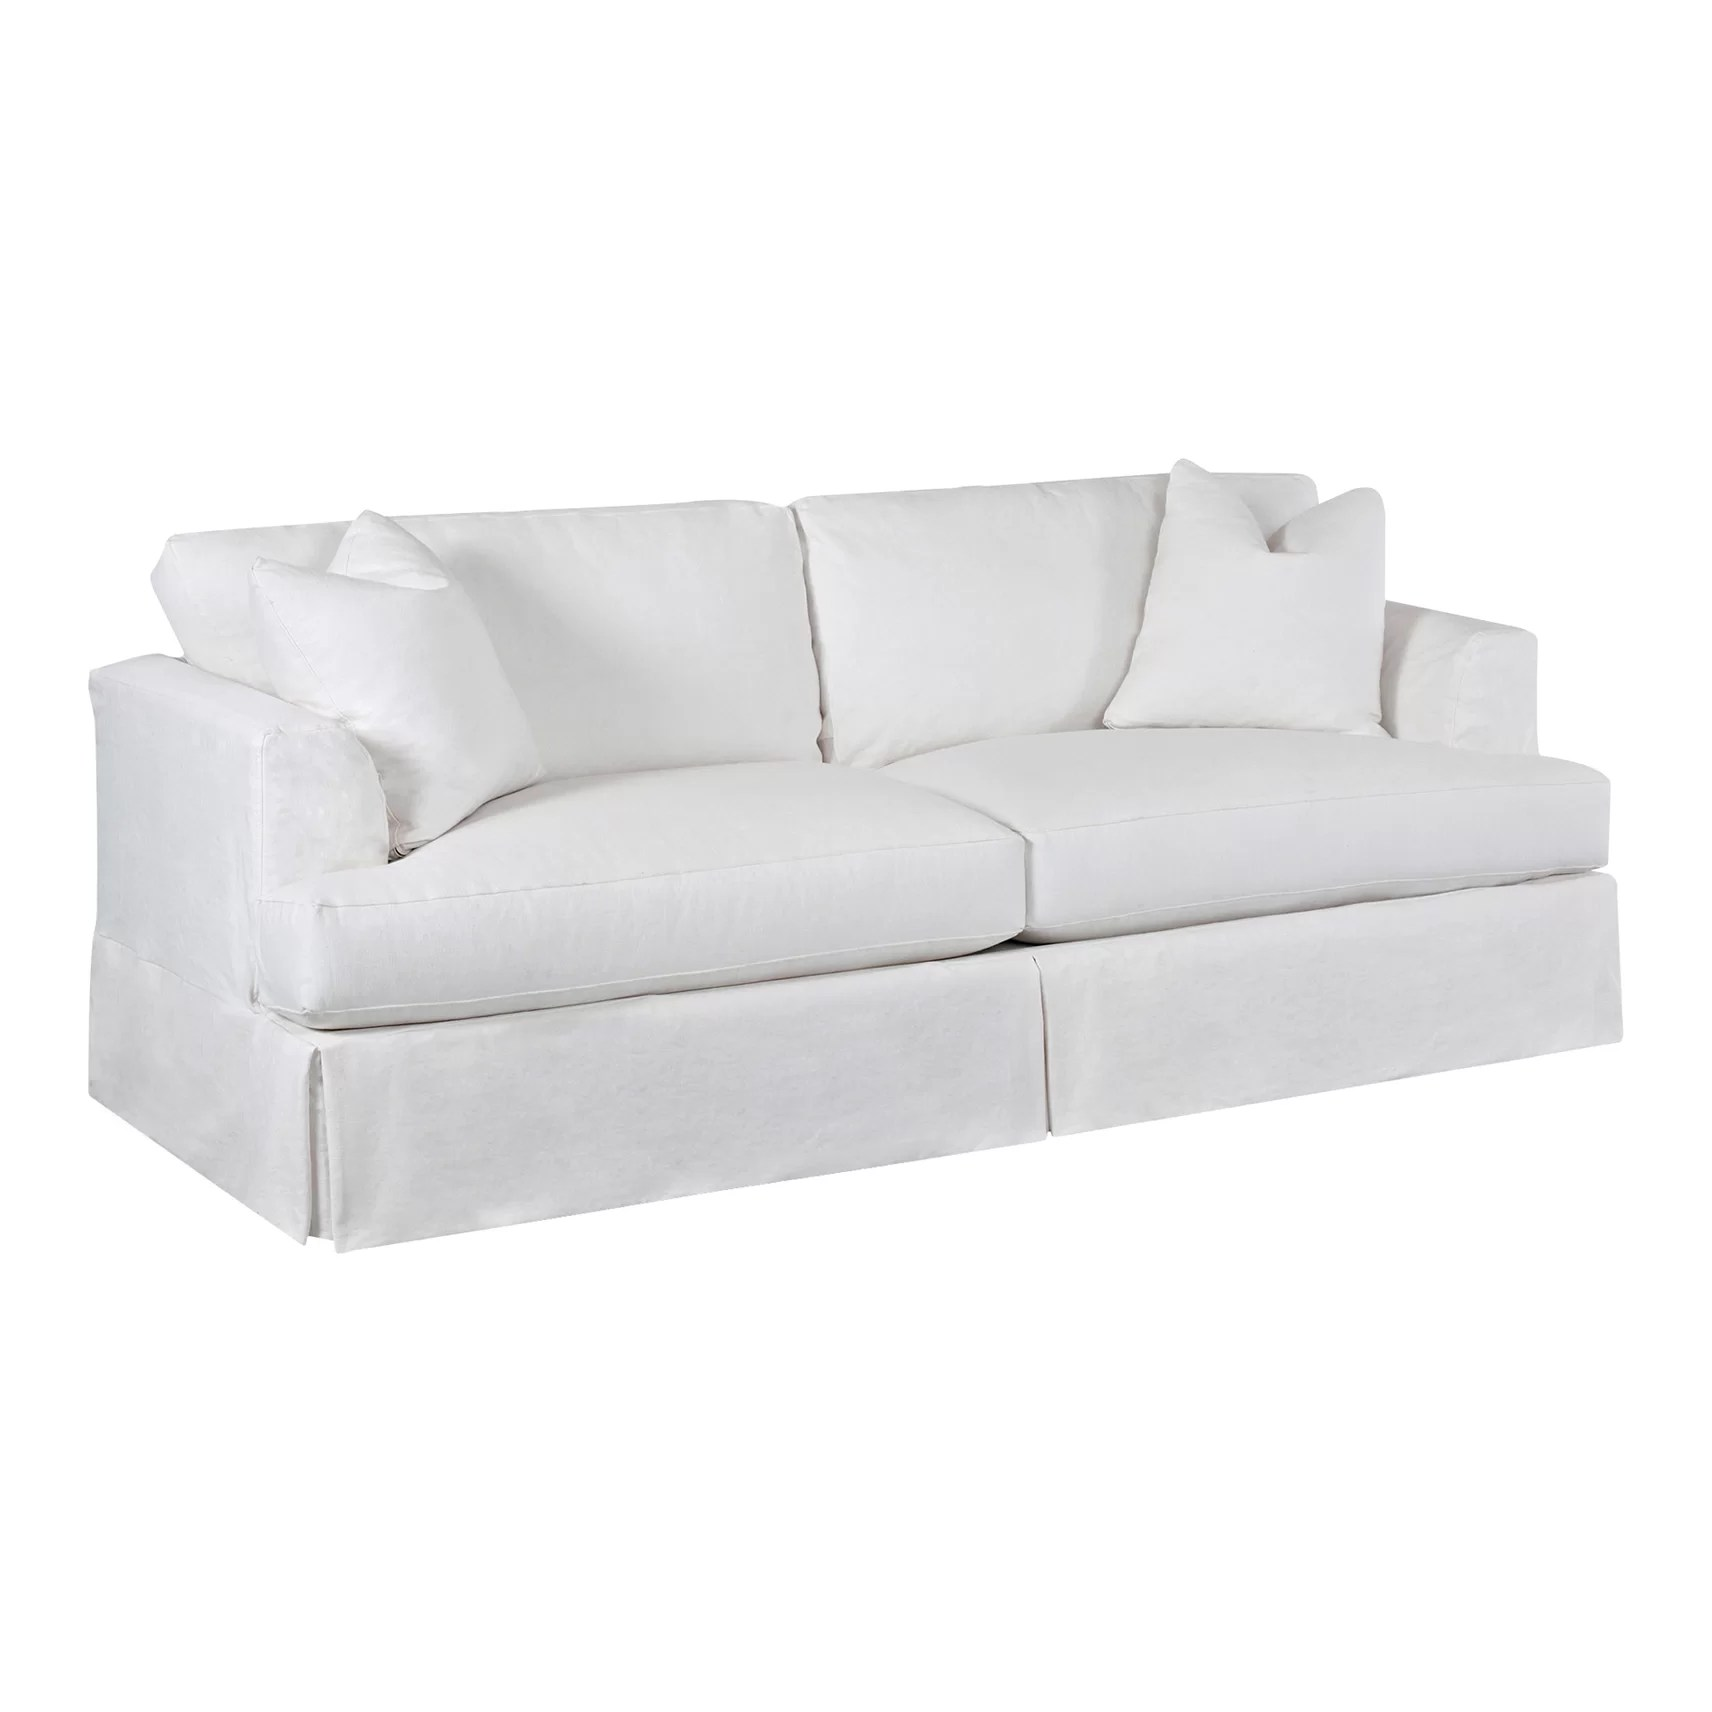 wayfair sofa reviews wall bed with india custom upholstery carly and